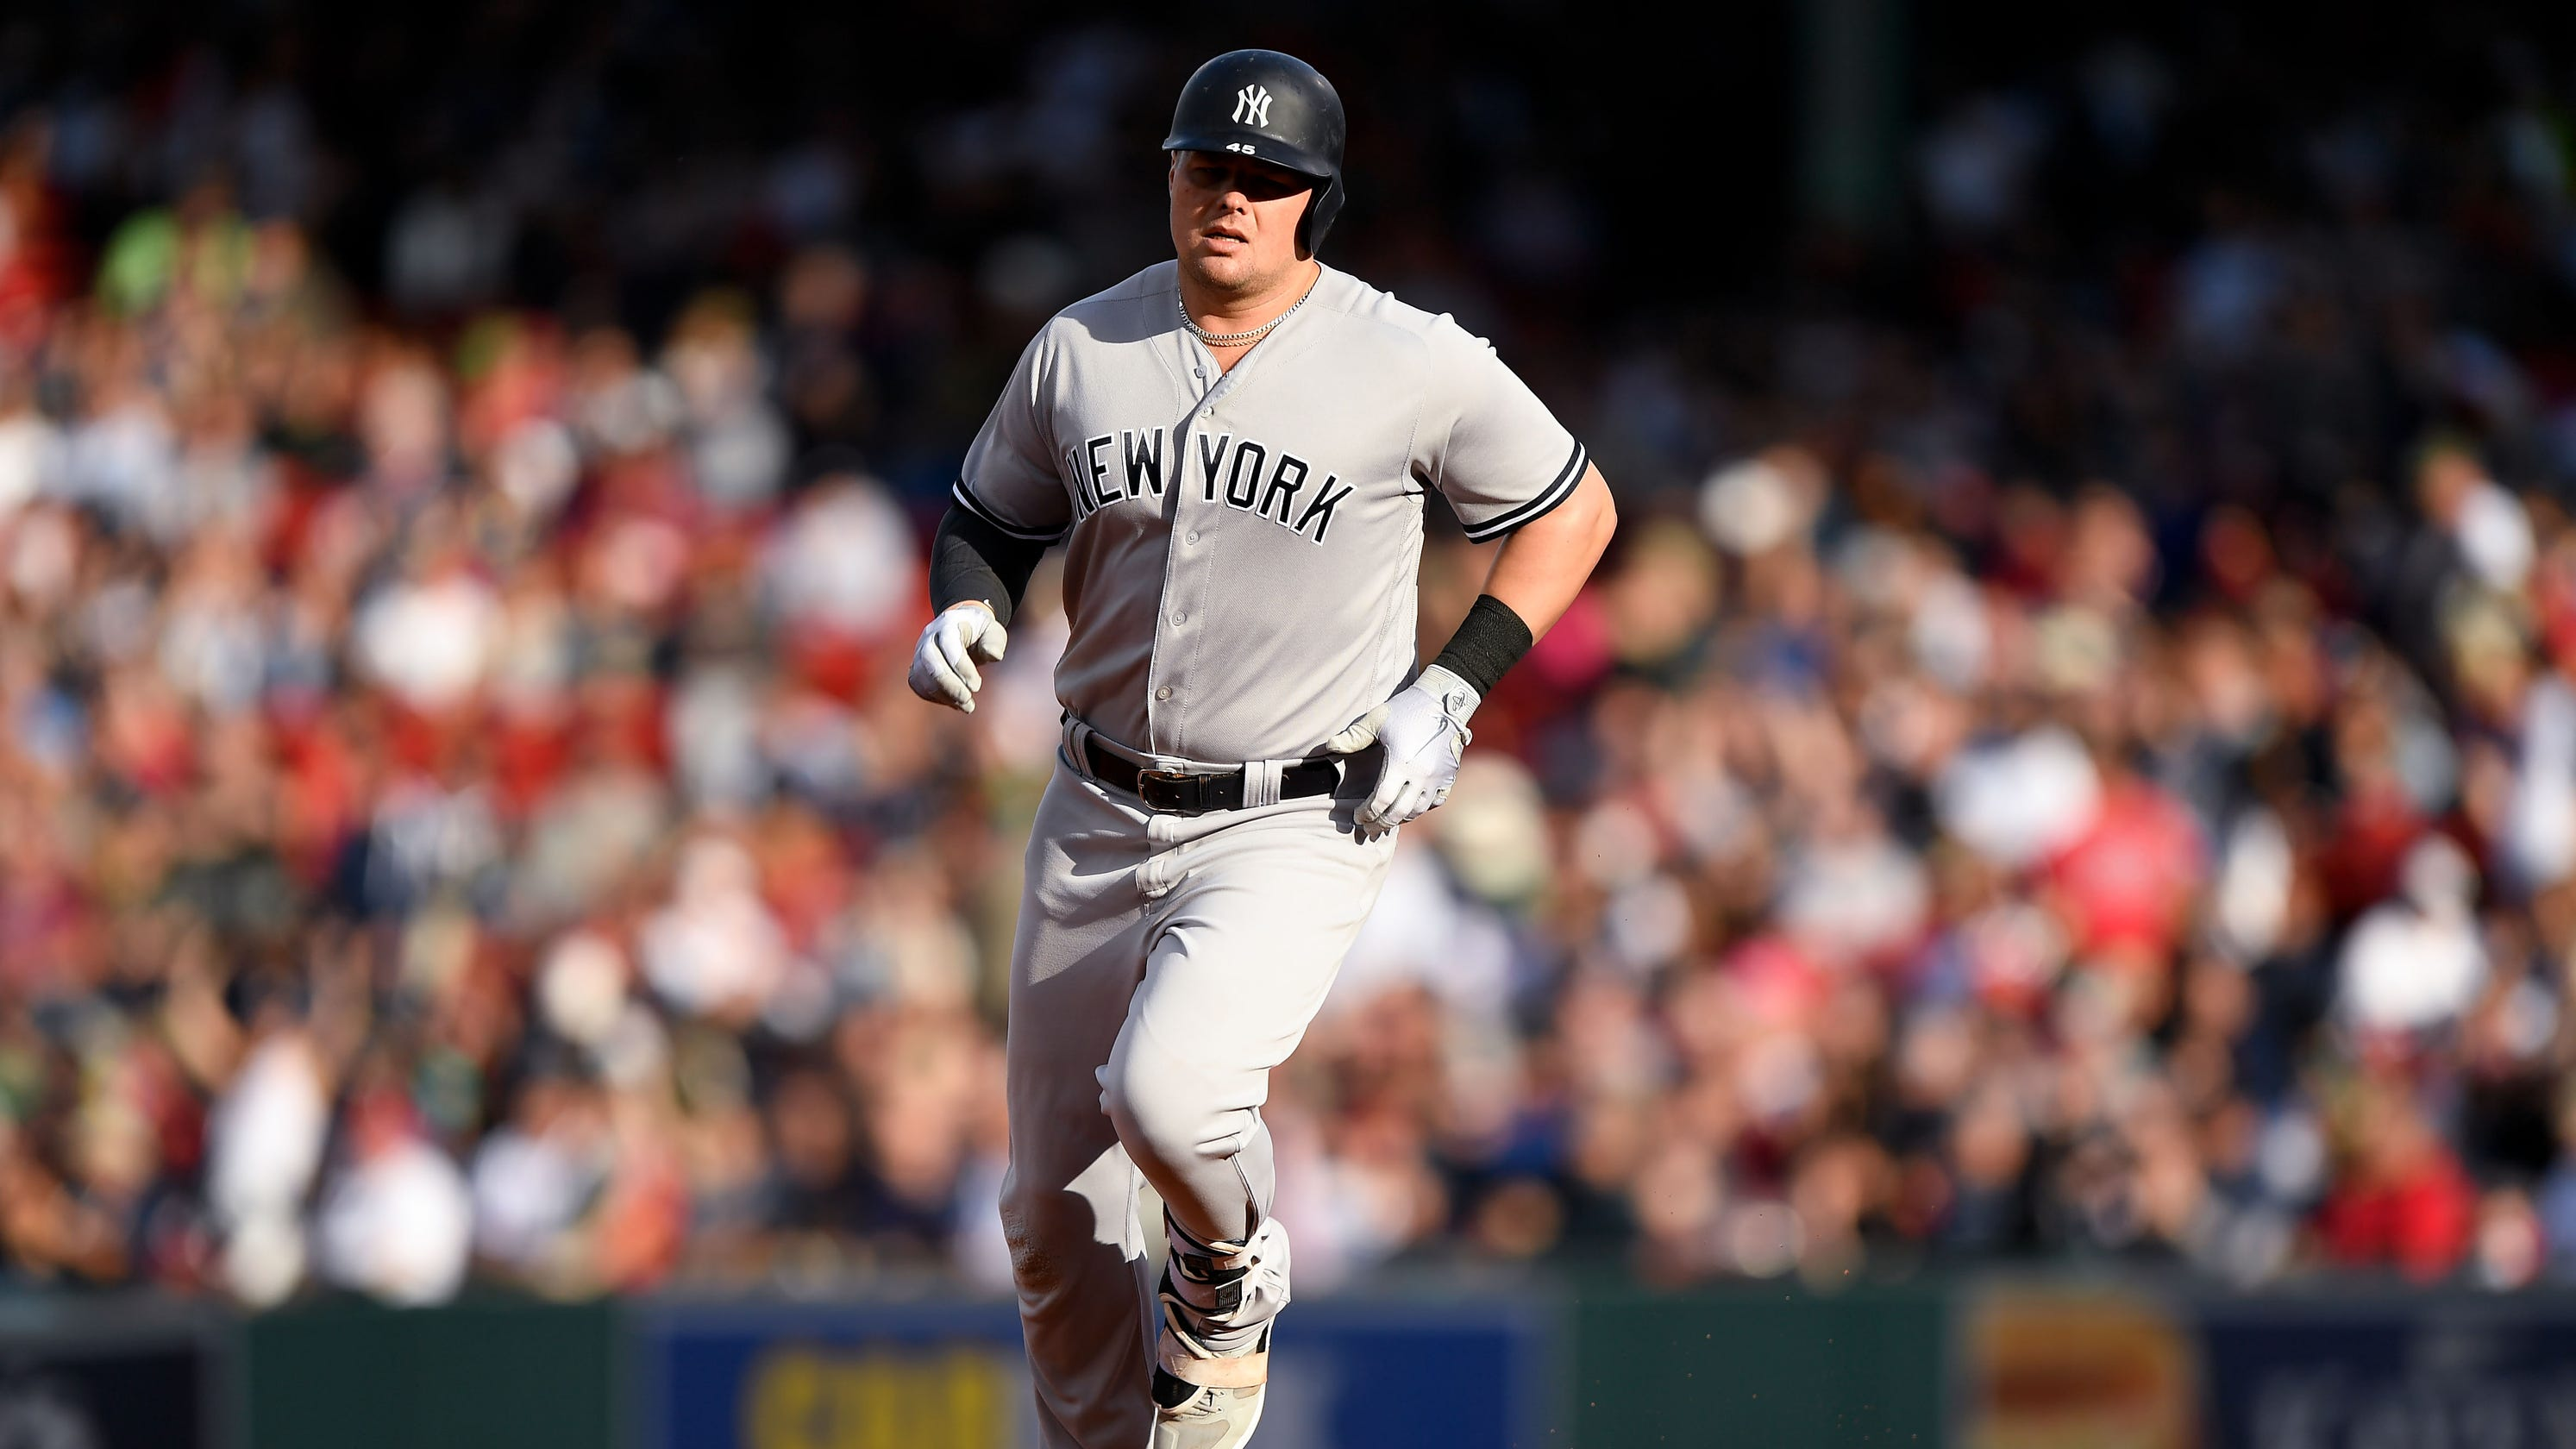 reputable site 9afeb 1f5d8 Luke Voit keeps hitting homers as NY Yankees bow to Red Sox